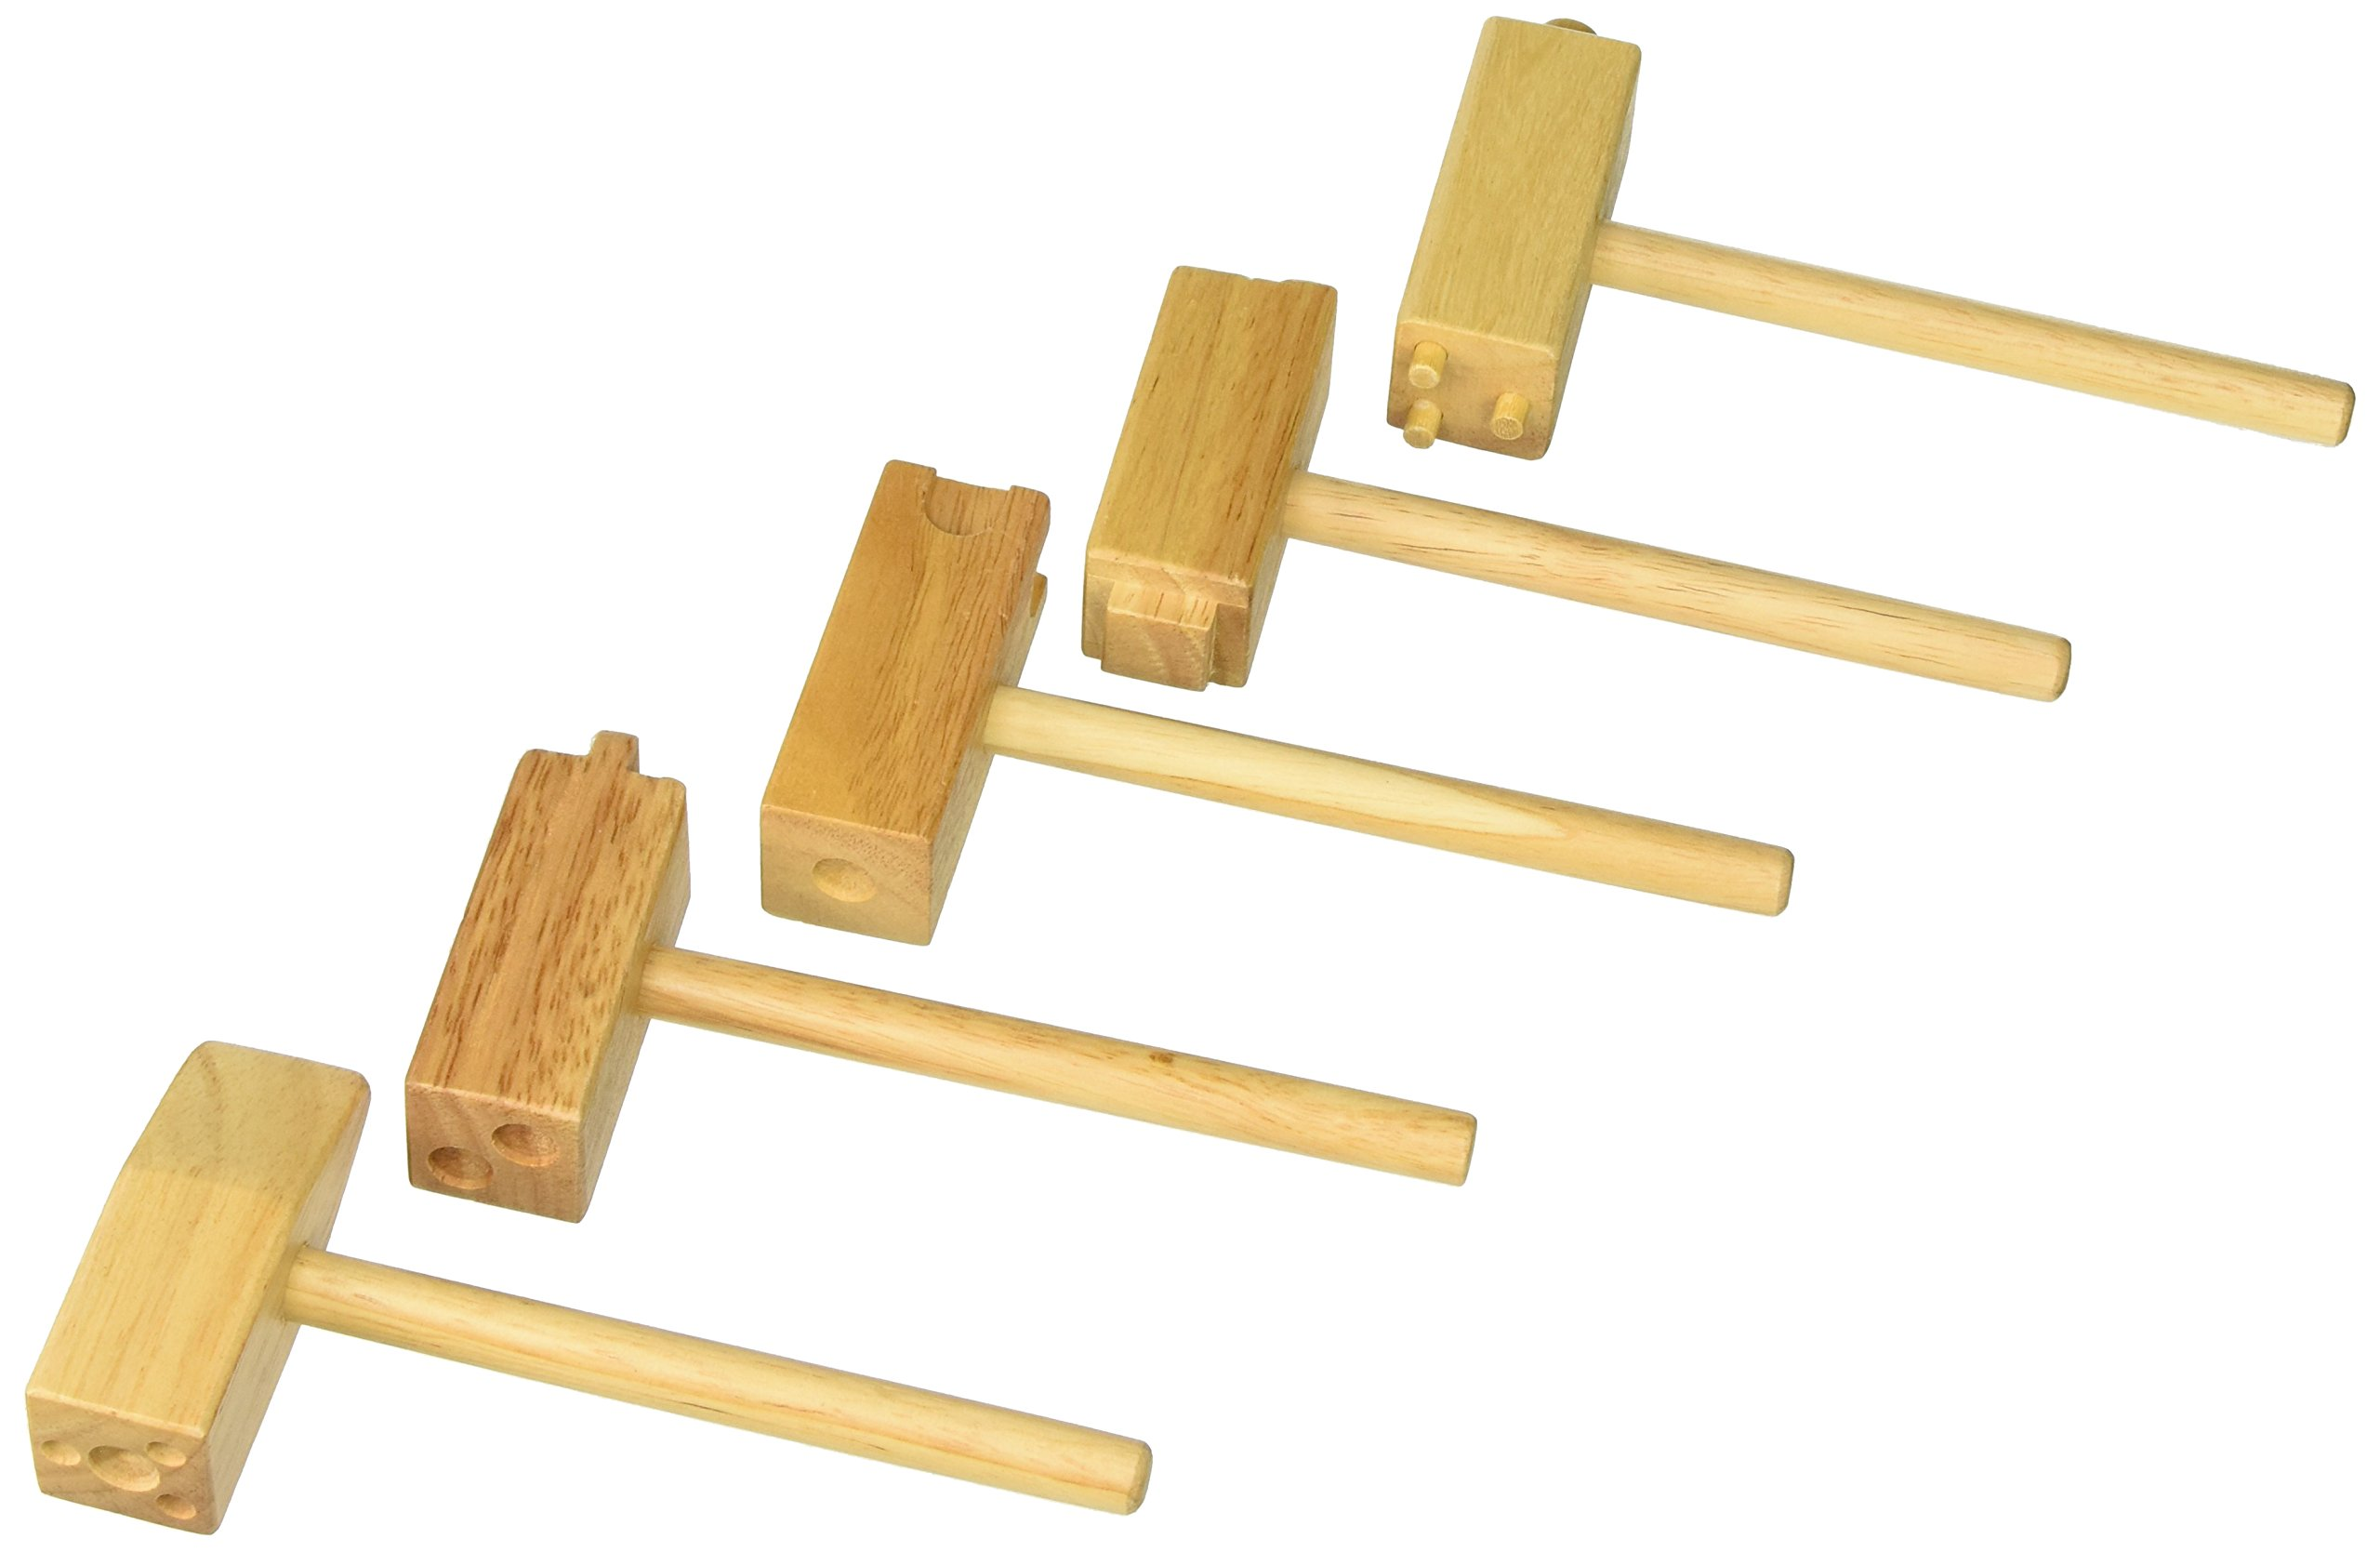 School Smart Wooden Clay Hammer Set with Masonite Board - Set of 5